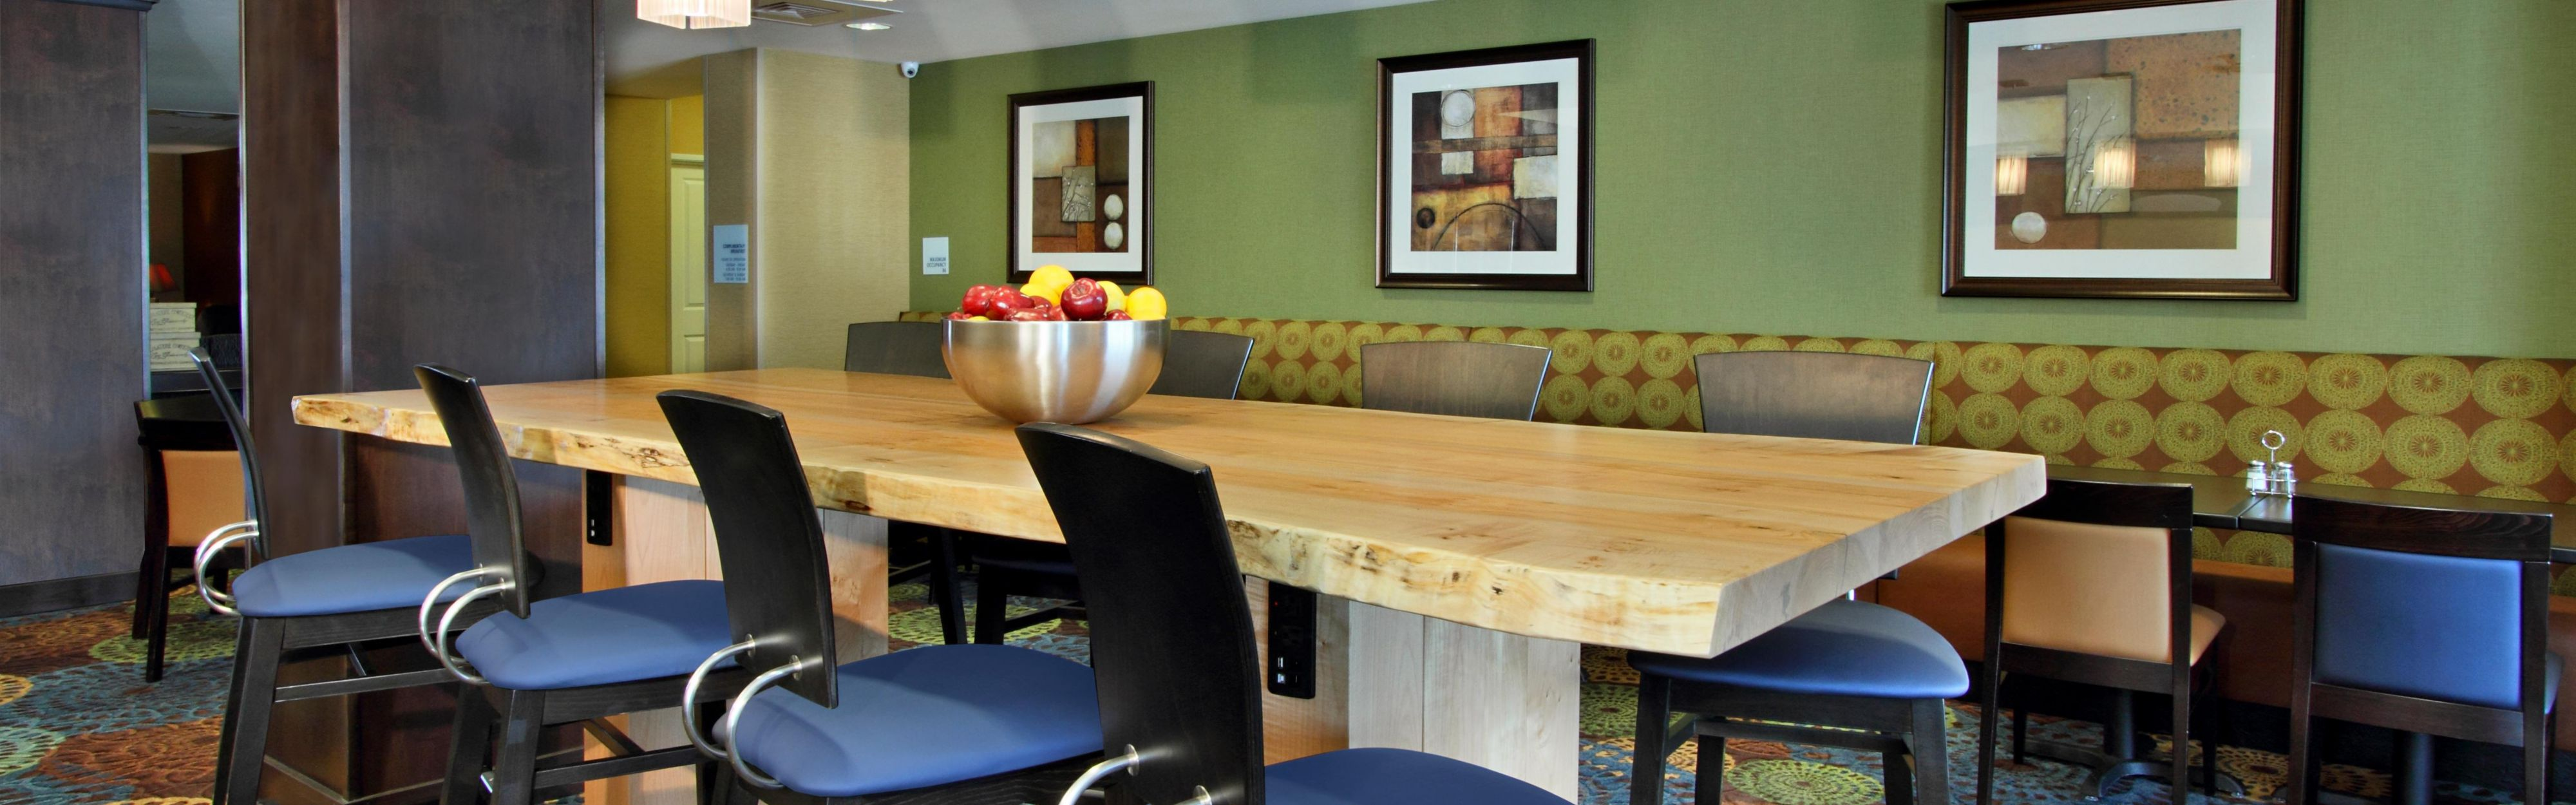 Holiday Inn Express & Suites Colorado Springs-First & Main image 3